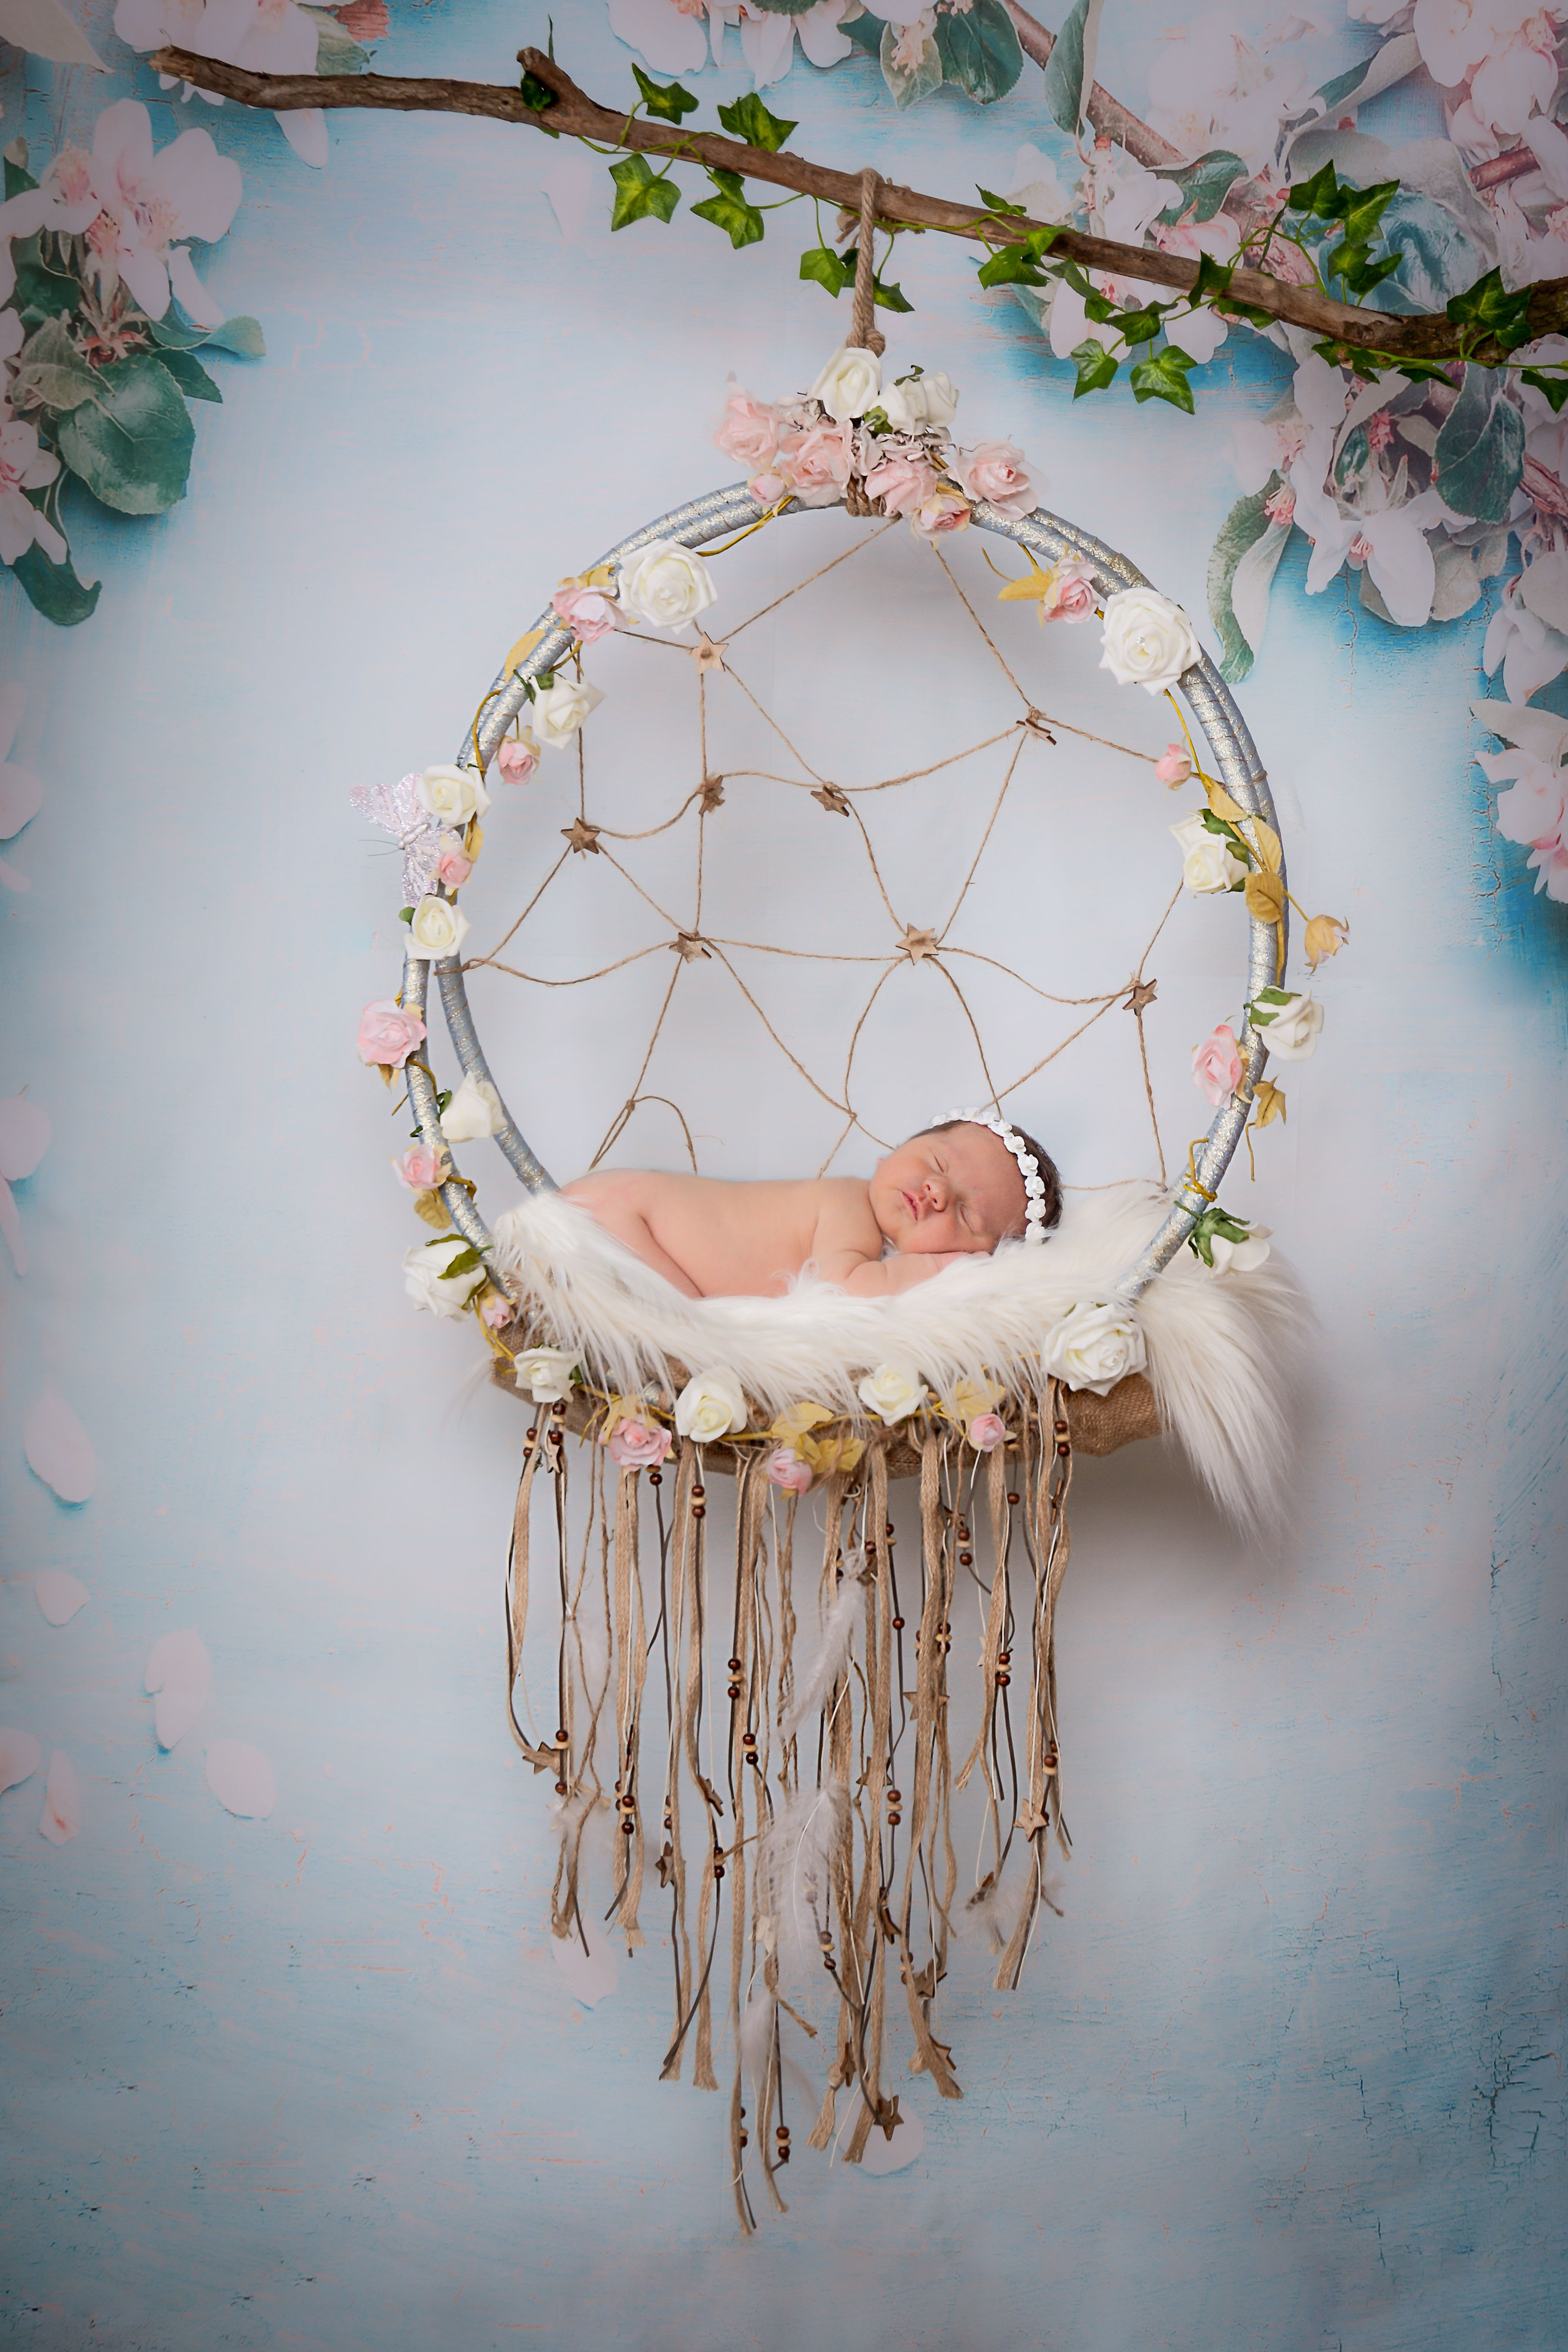 Trying A New Background With Our Handmade Dreamcatcher Prop We